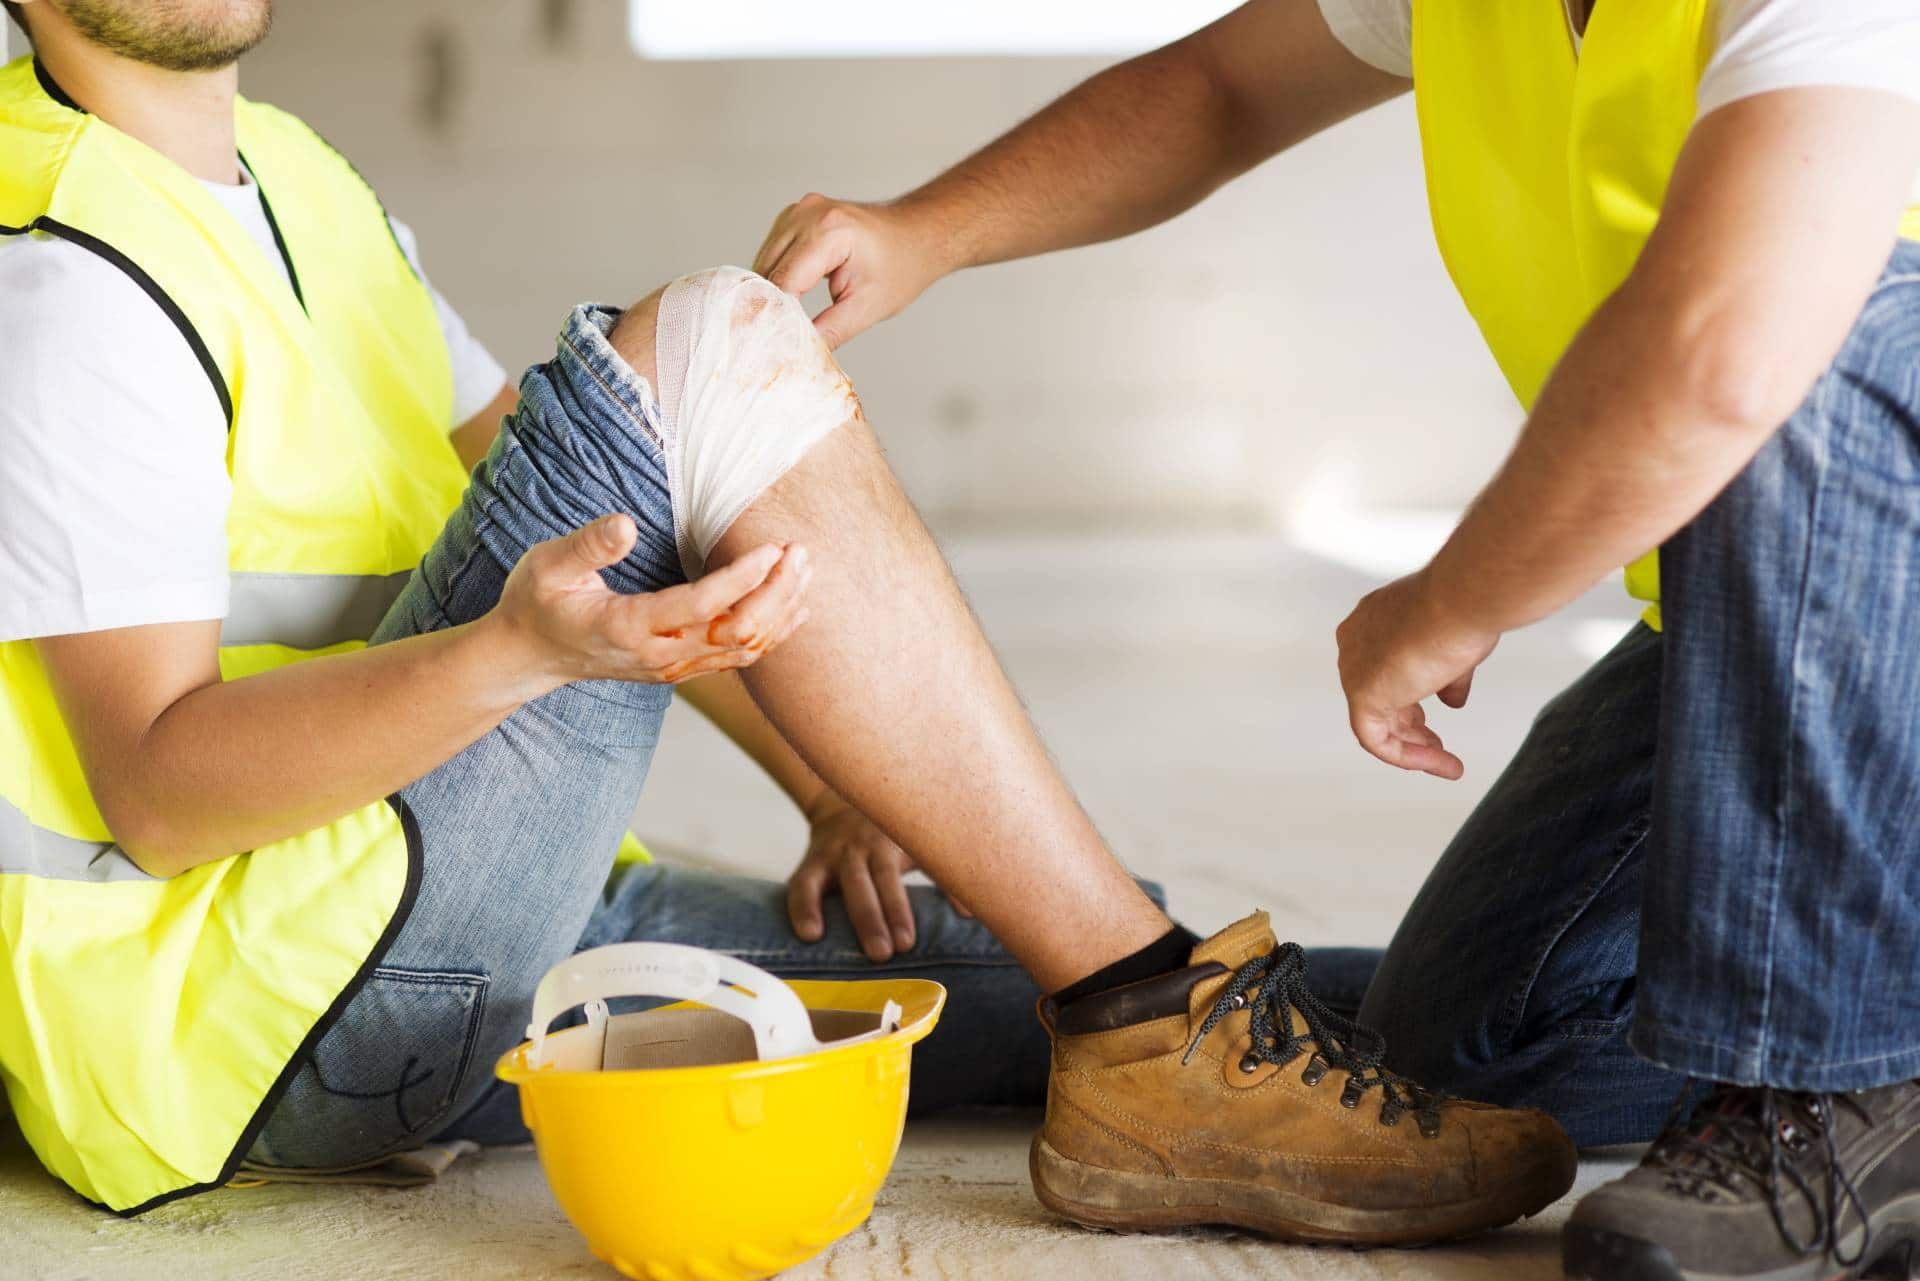 Hurt on the job? Schedule a free consultation with our personal injury lawyers at the Angell Law Firm in Milton, GA